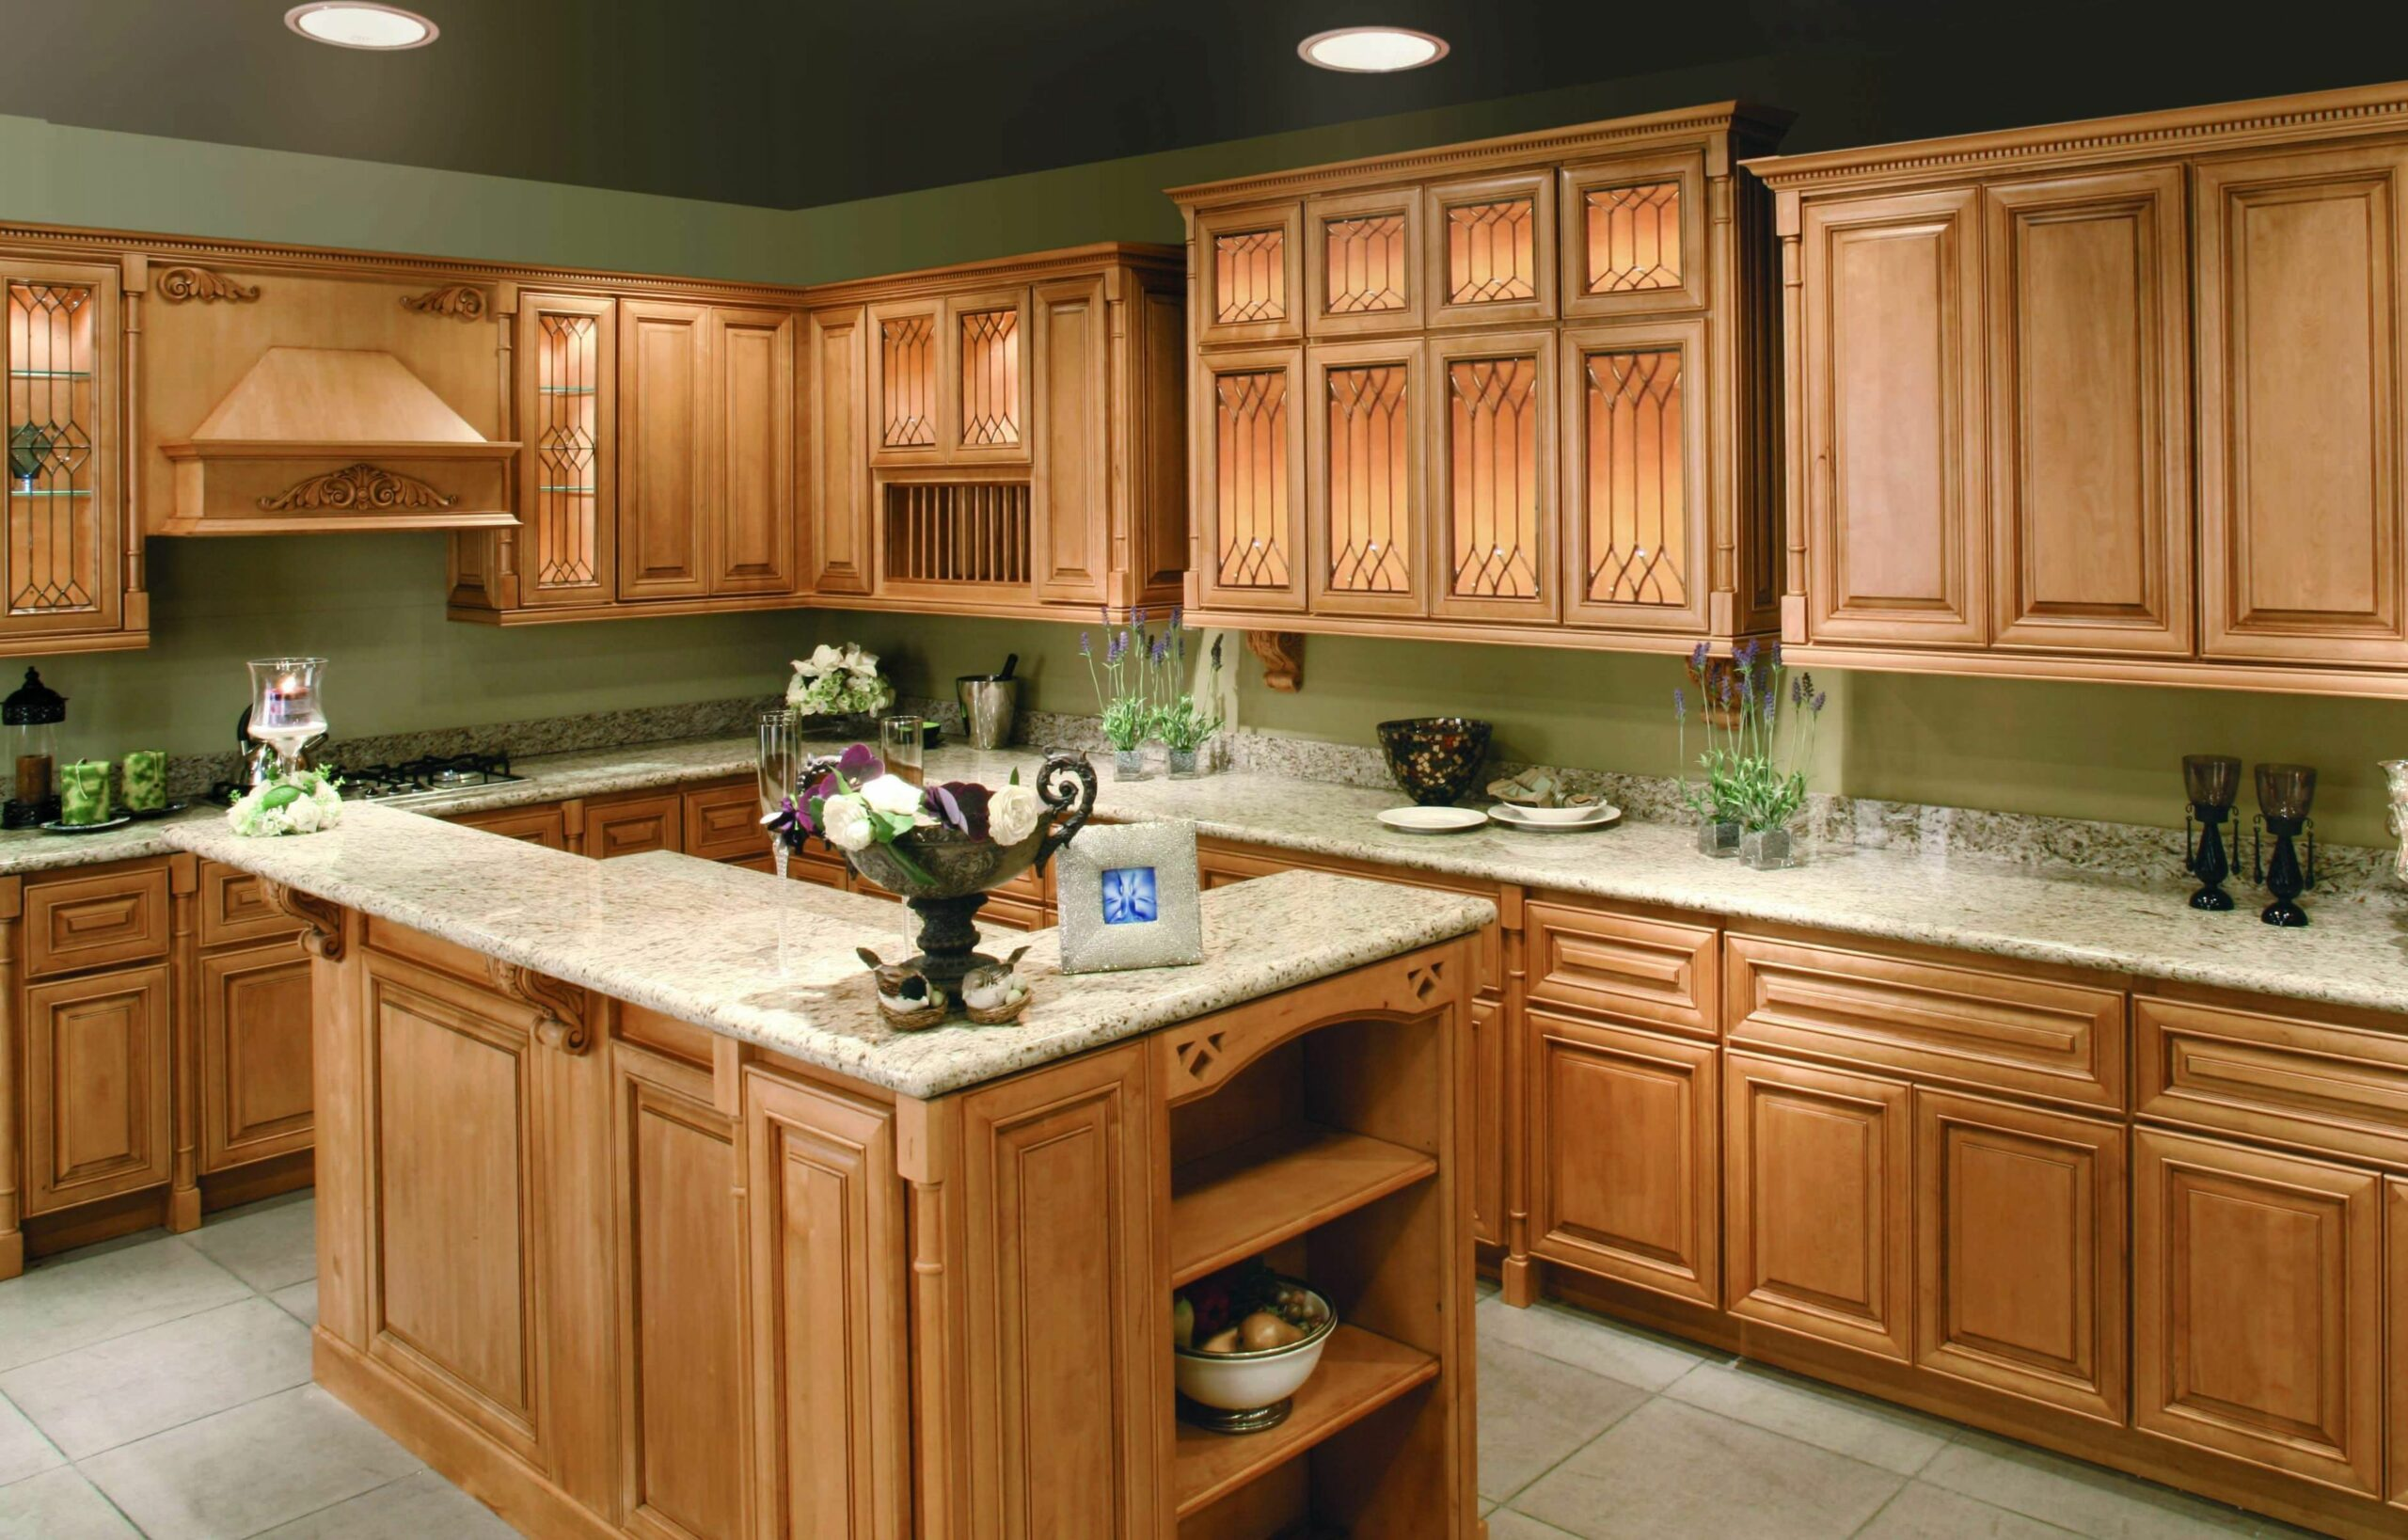 Andie MacDowells Classic Tudor Kitchen @ CUSTOM-HOME.NET | Oak ..